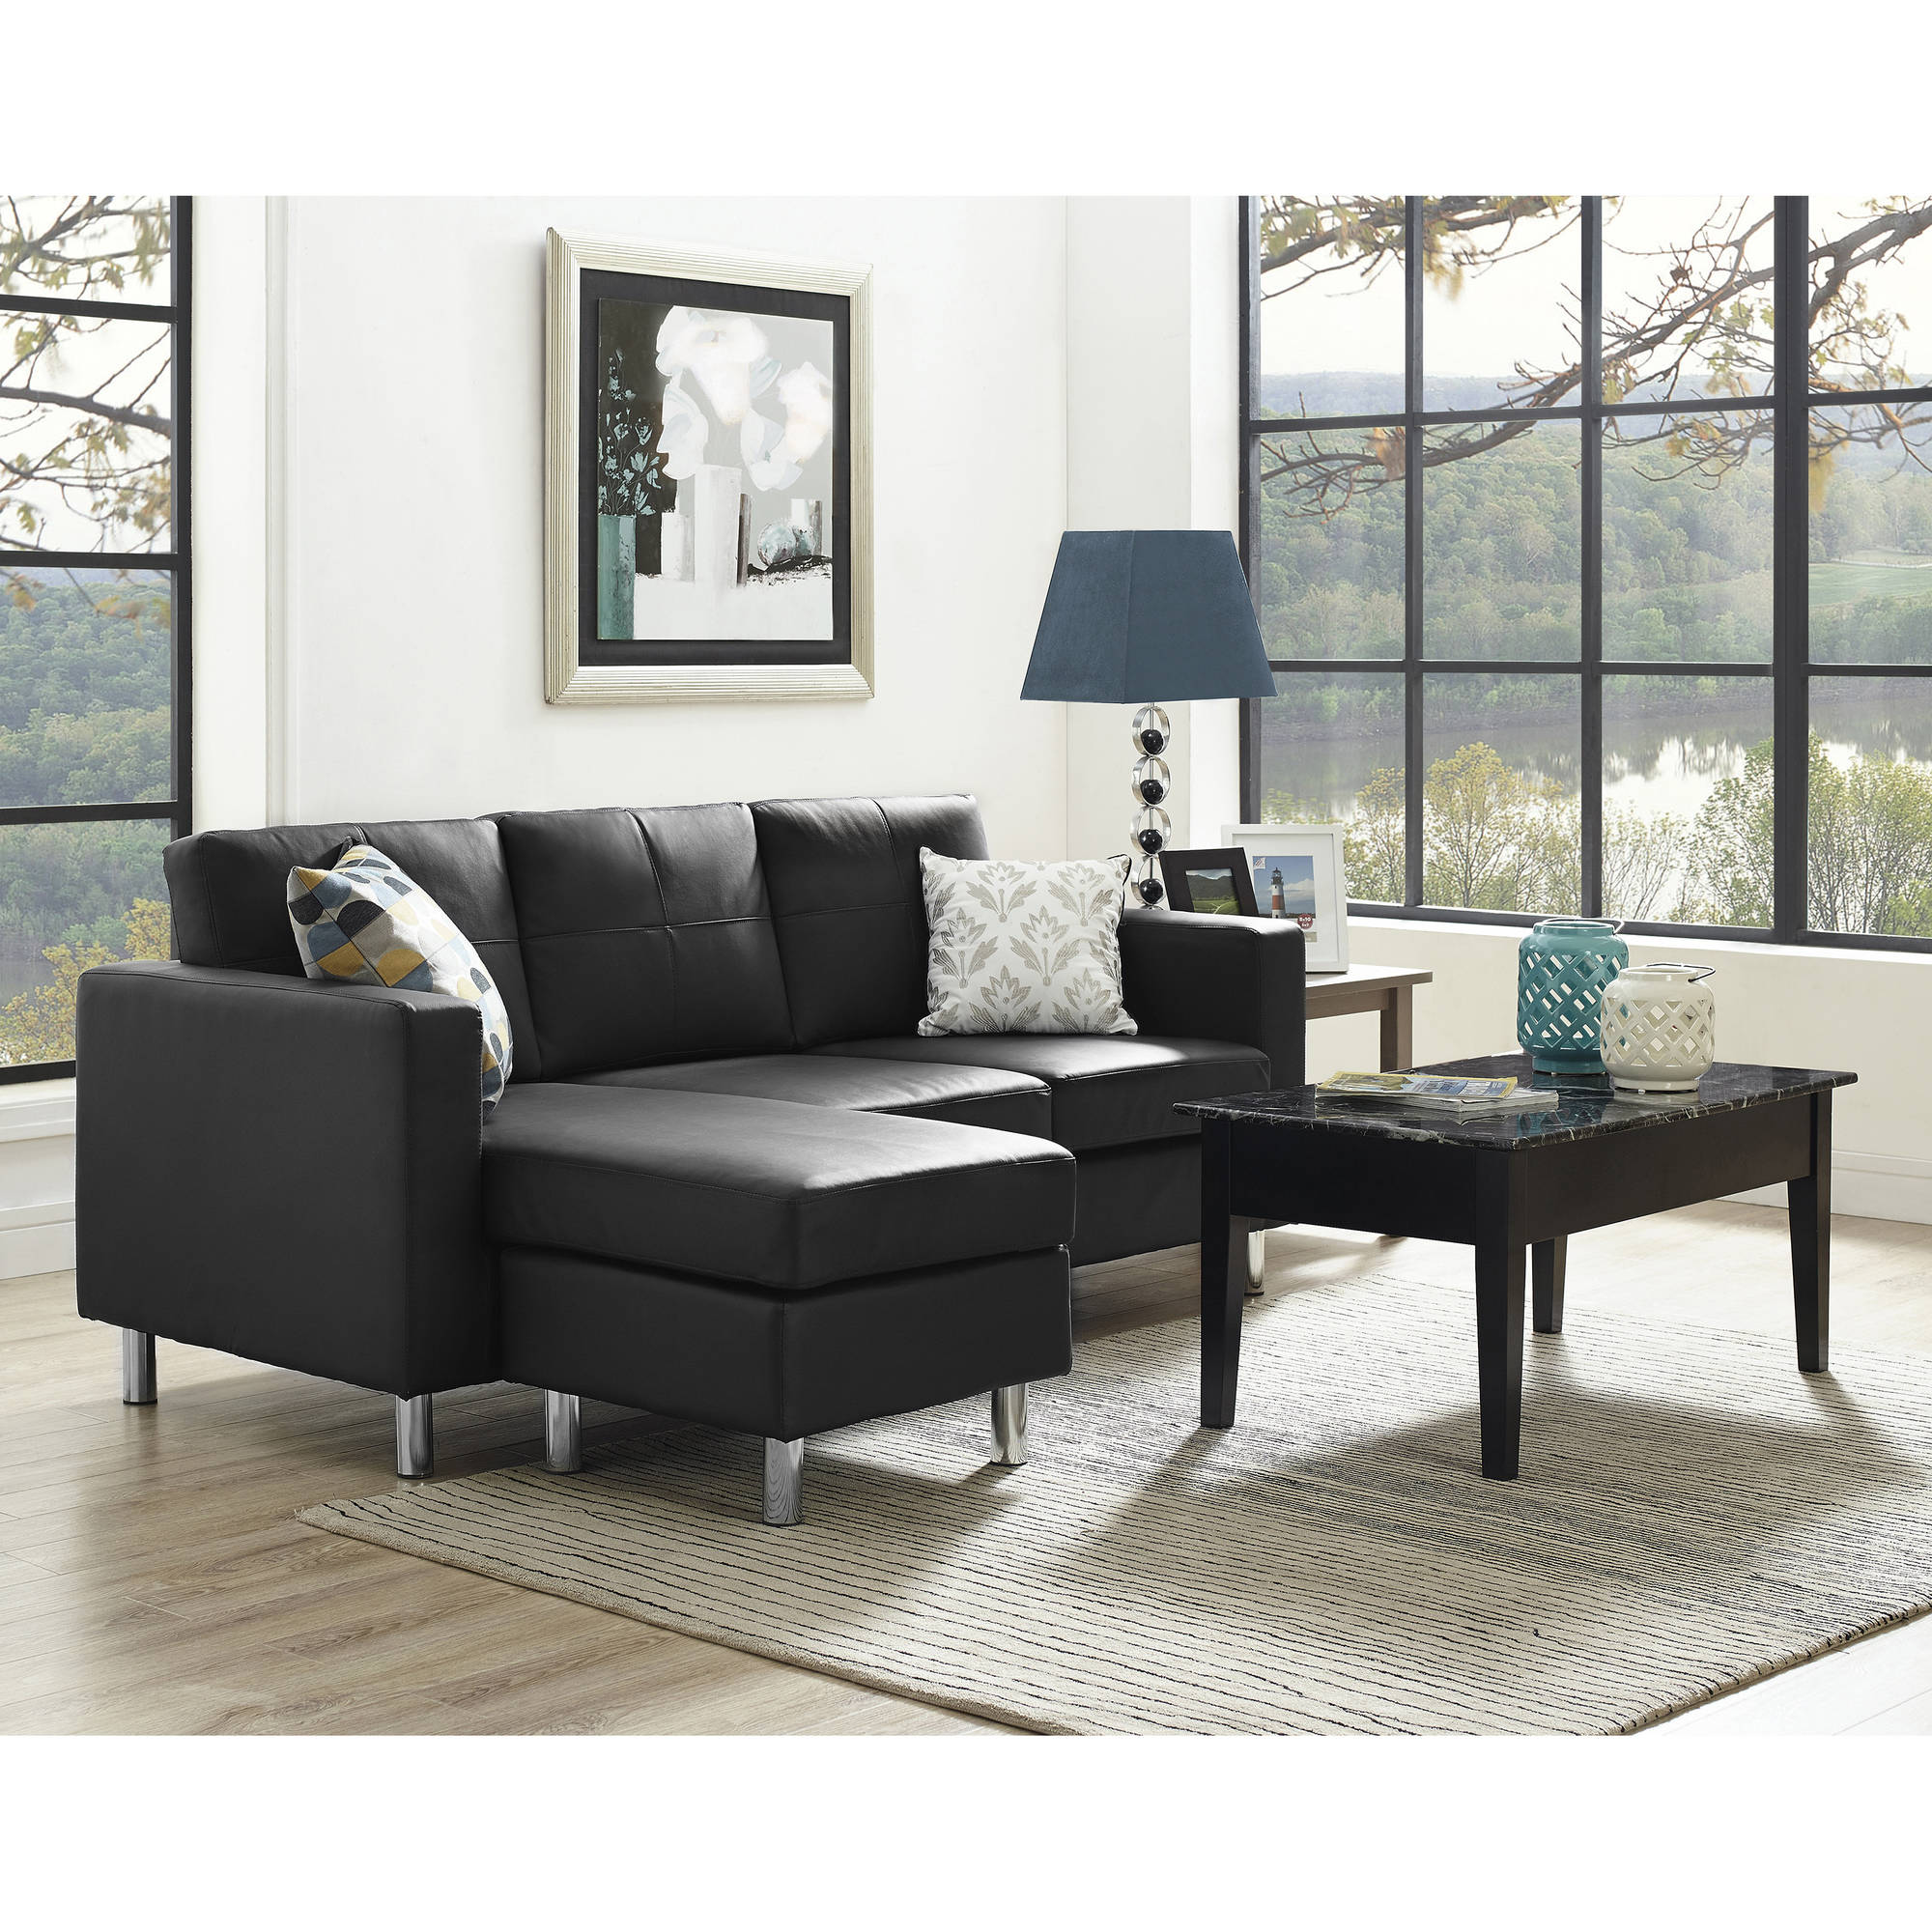 Dorel Living Small Spaces Configurable Sectional Sofa, Multiple Colors -  Walmart.com